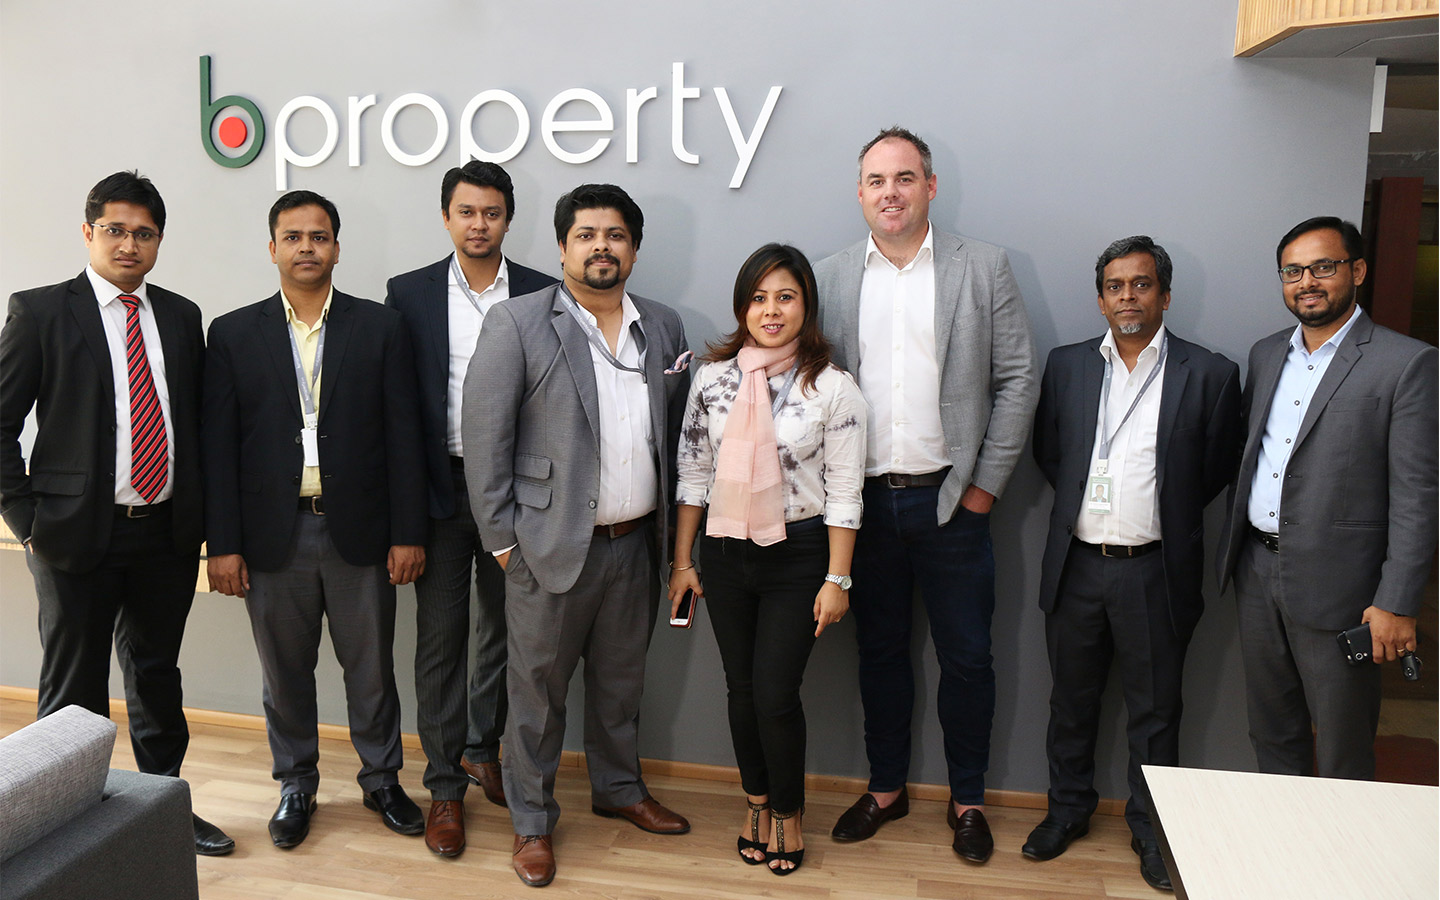 The property expert team from Bproperty